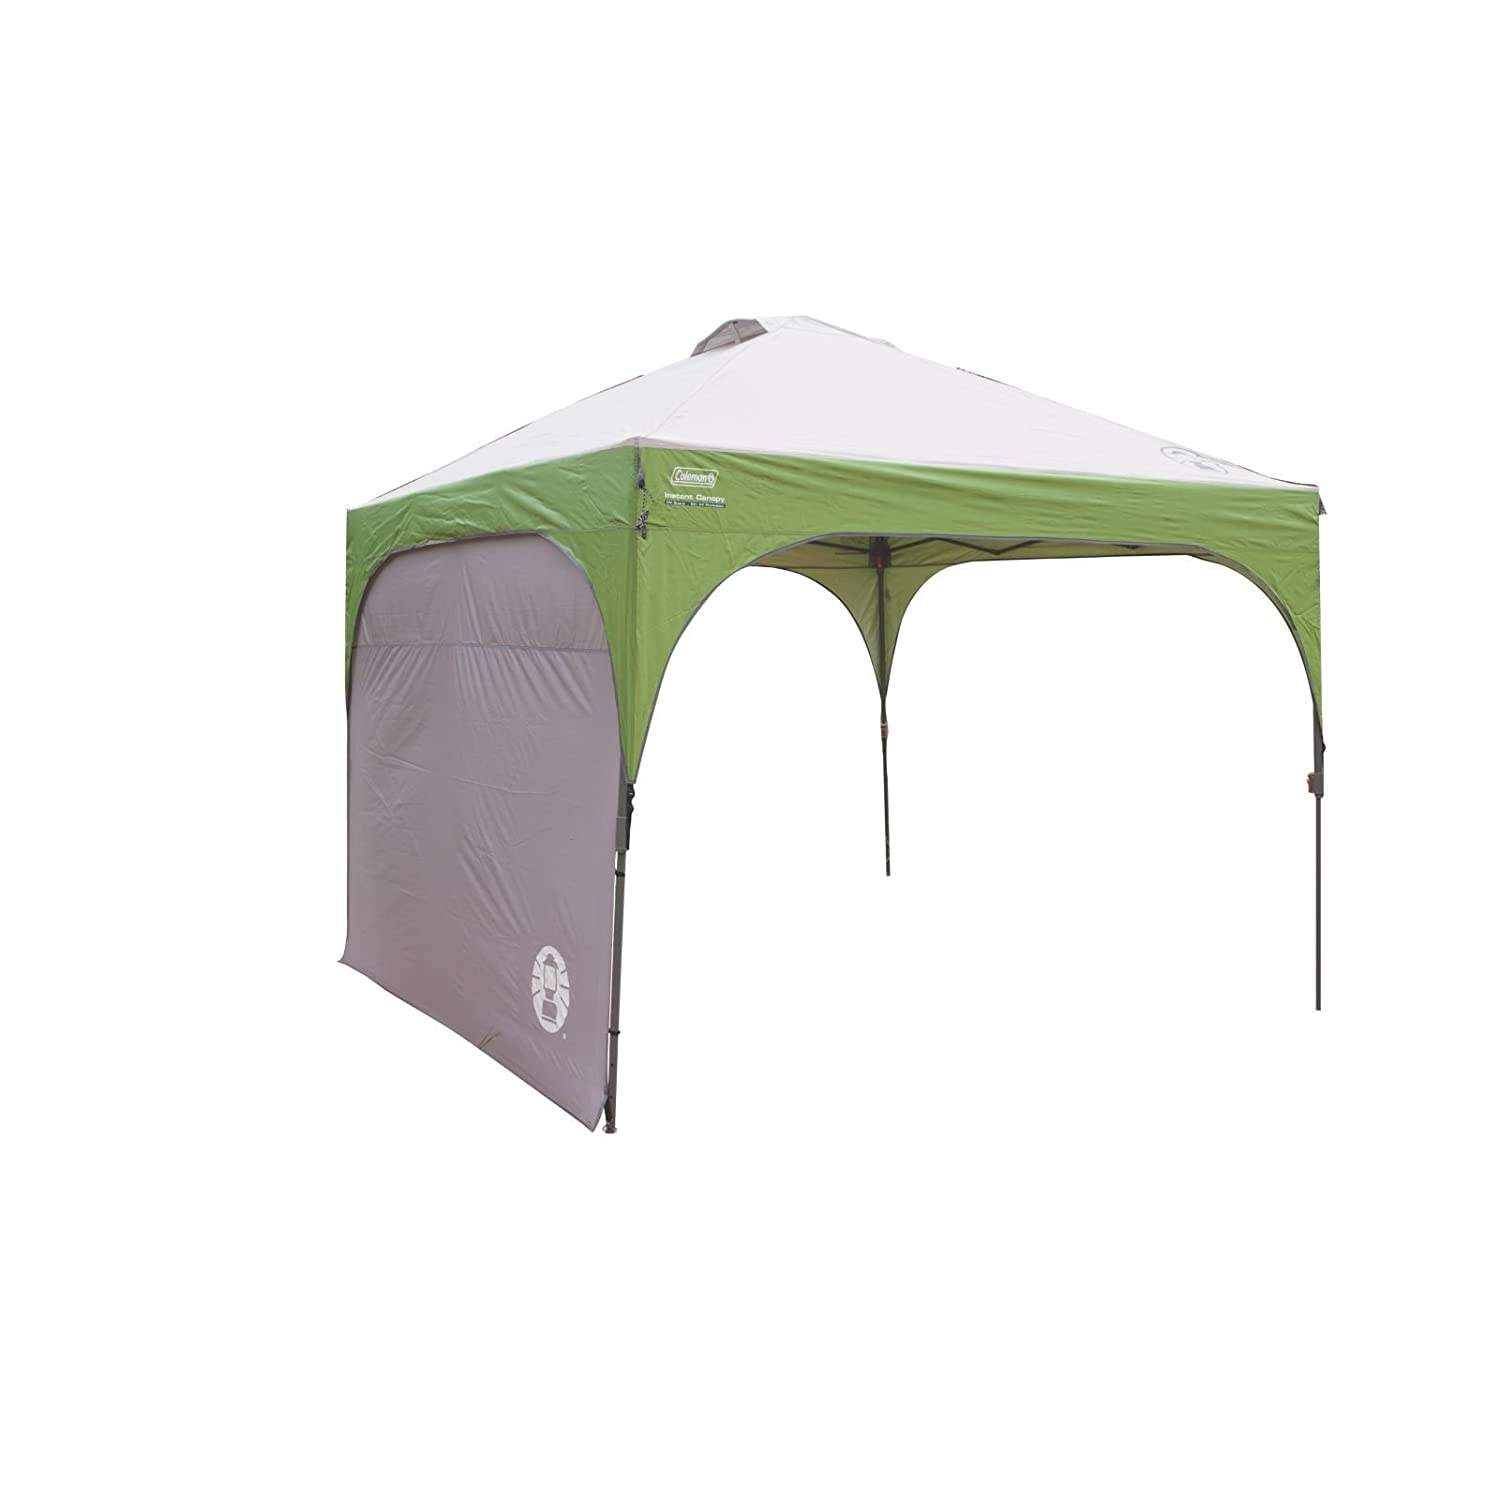 Amazon.com Coleman Instant Canopy Sunwall Accessory Only 10 x 10 Feet Sports u0026 Outdoors  sc 1 st  Amazon.com & Amazon.com: Coleman Instant Canopy Sunwall Accessory Only 10 x ...